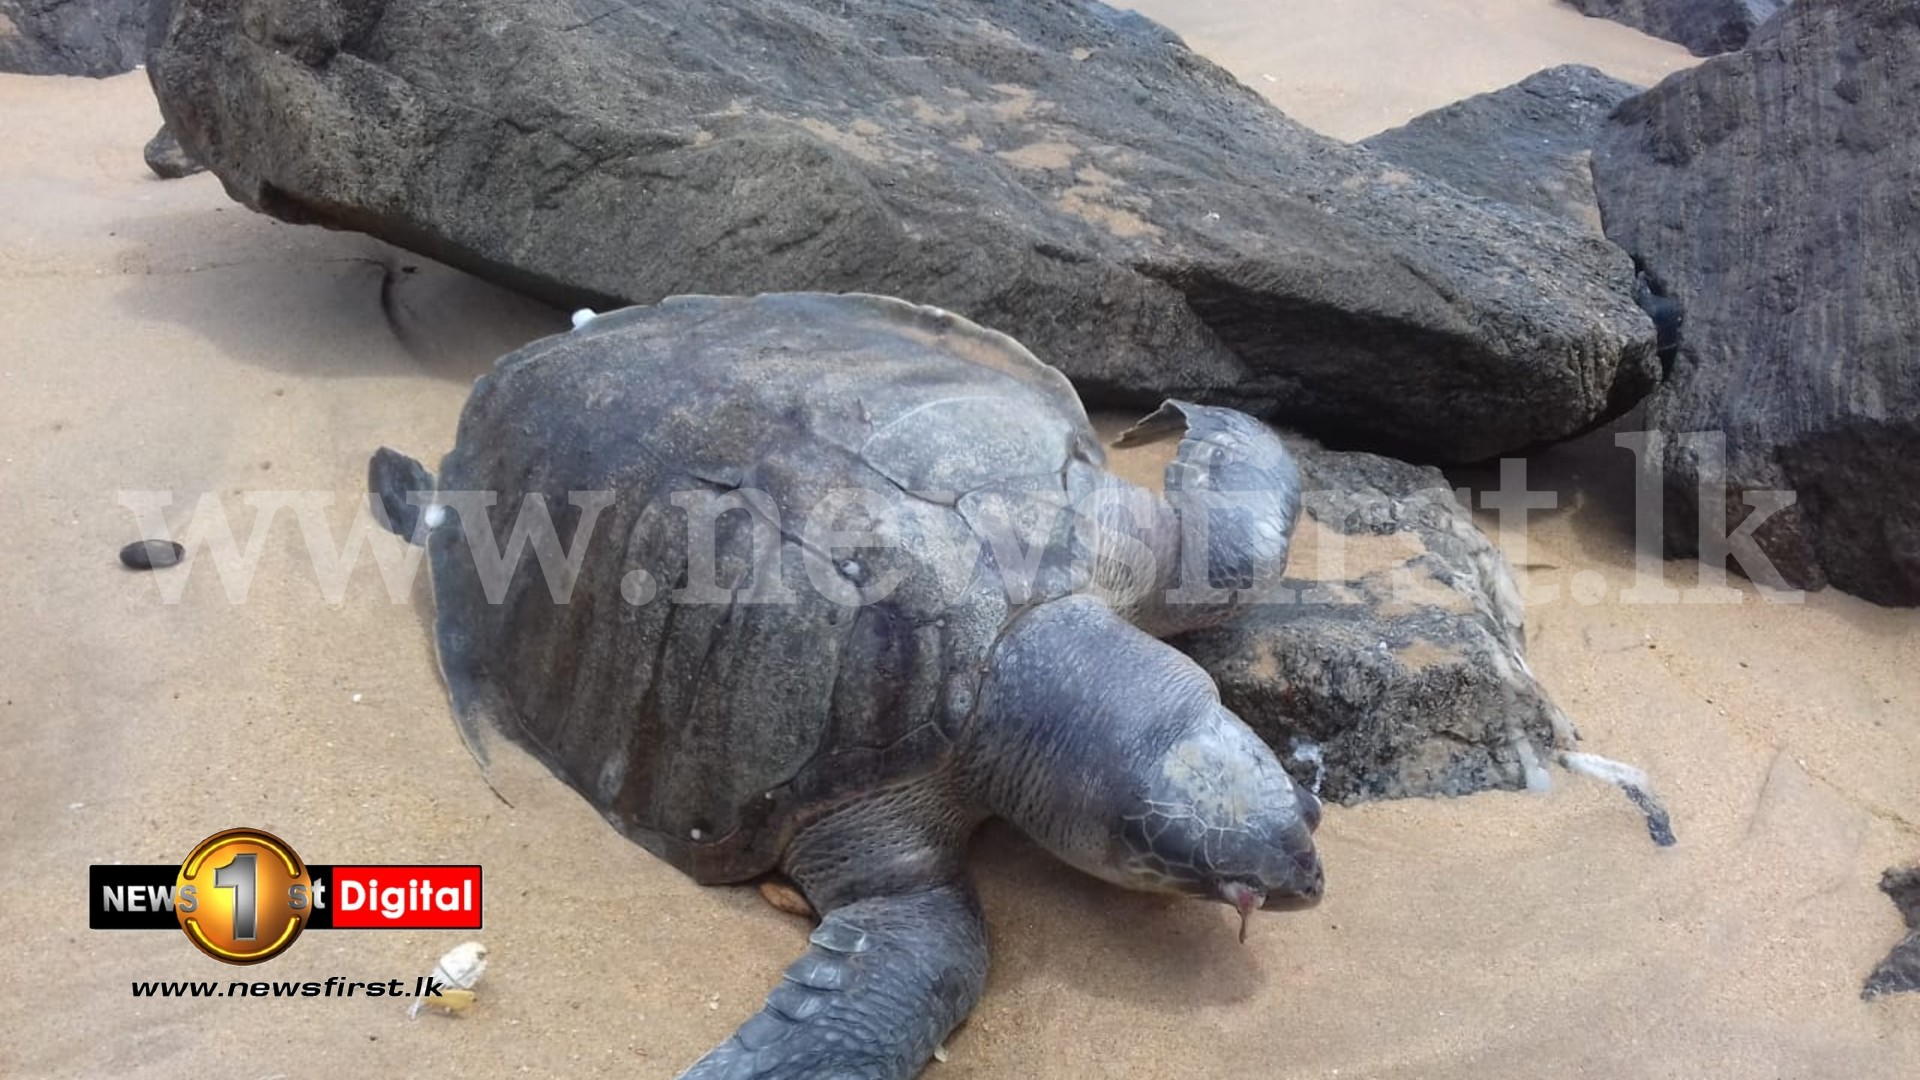 Plastic resin pellet pollution also cause for sea turtles to die in SL waters ; Experts